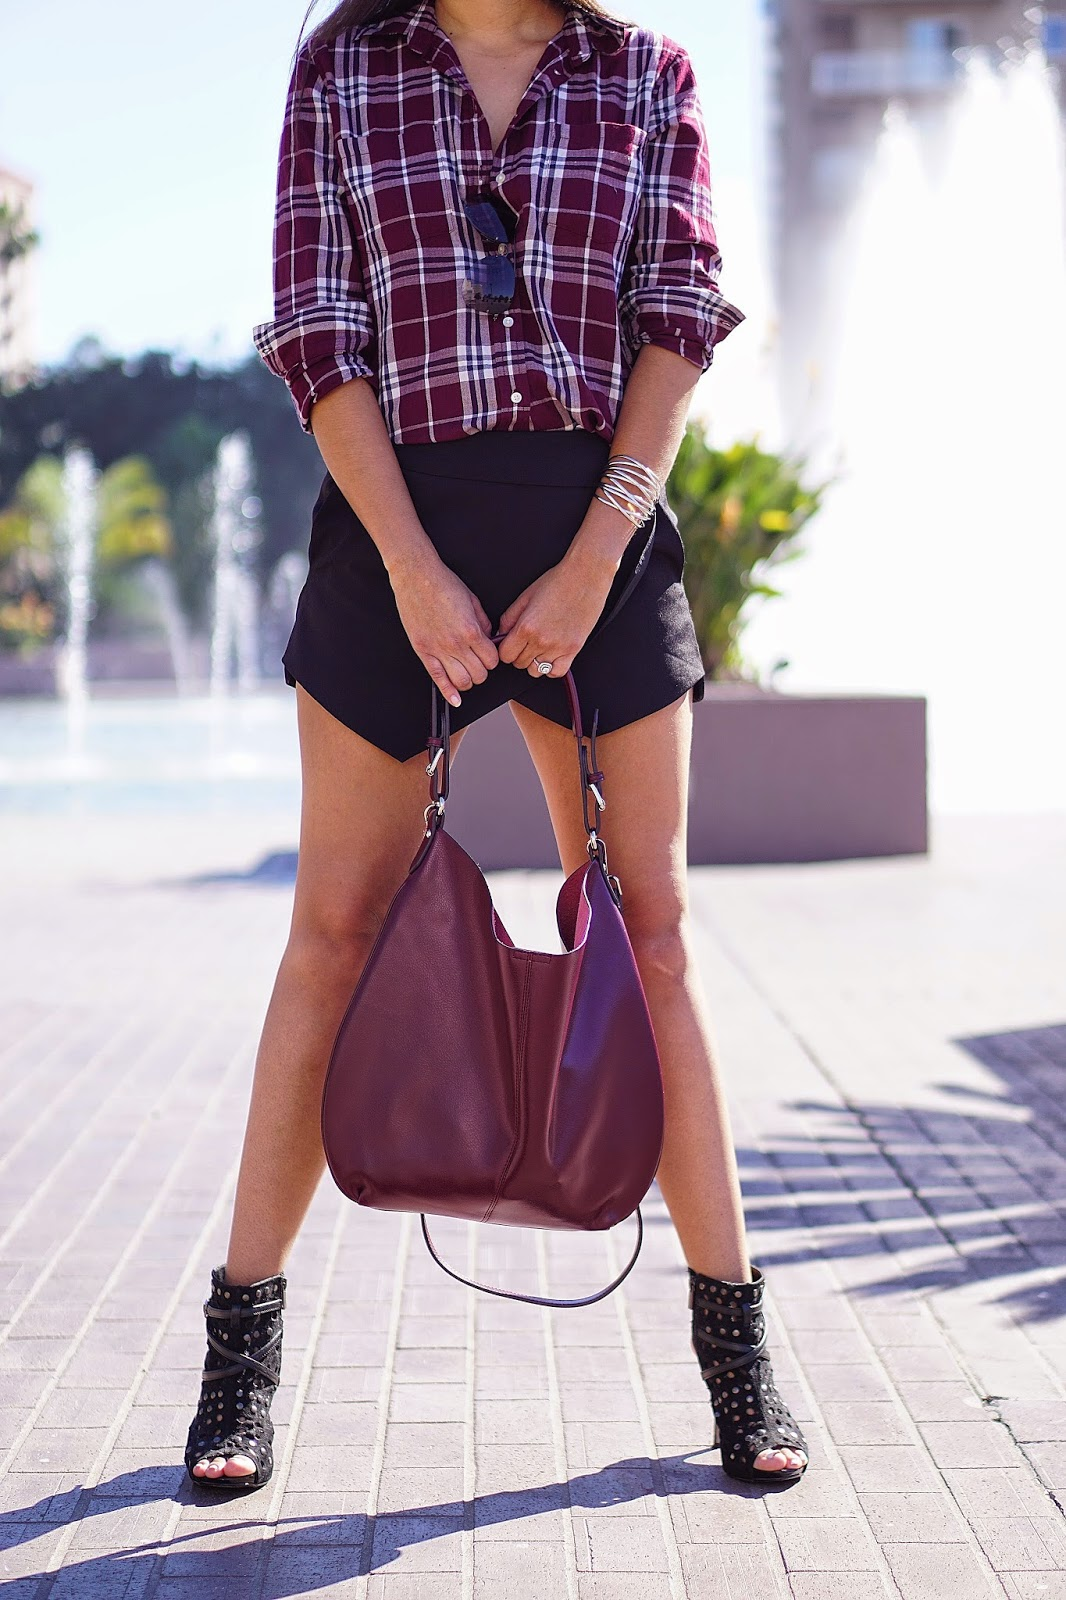 Joe Fresh Plaid Shirt, JCPenney Plaid Shirt, Forever 21, Black Skort, Asymmetrical black Skirt, Open toe Booties, Fall Fashion, TJ Maxx Purse, Black Booties